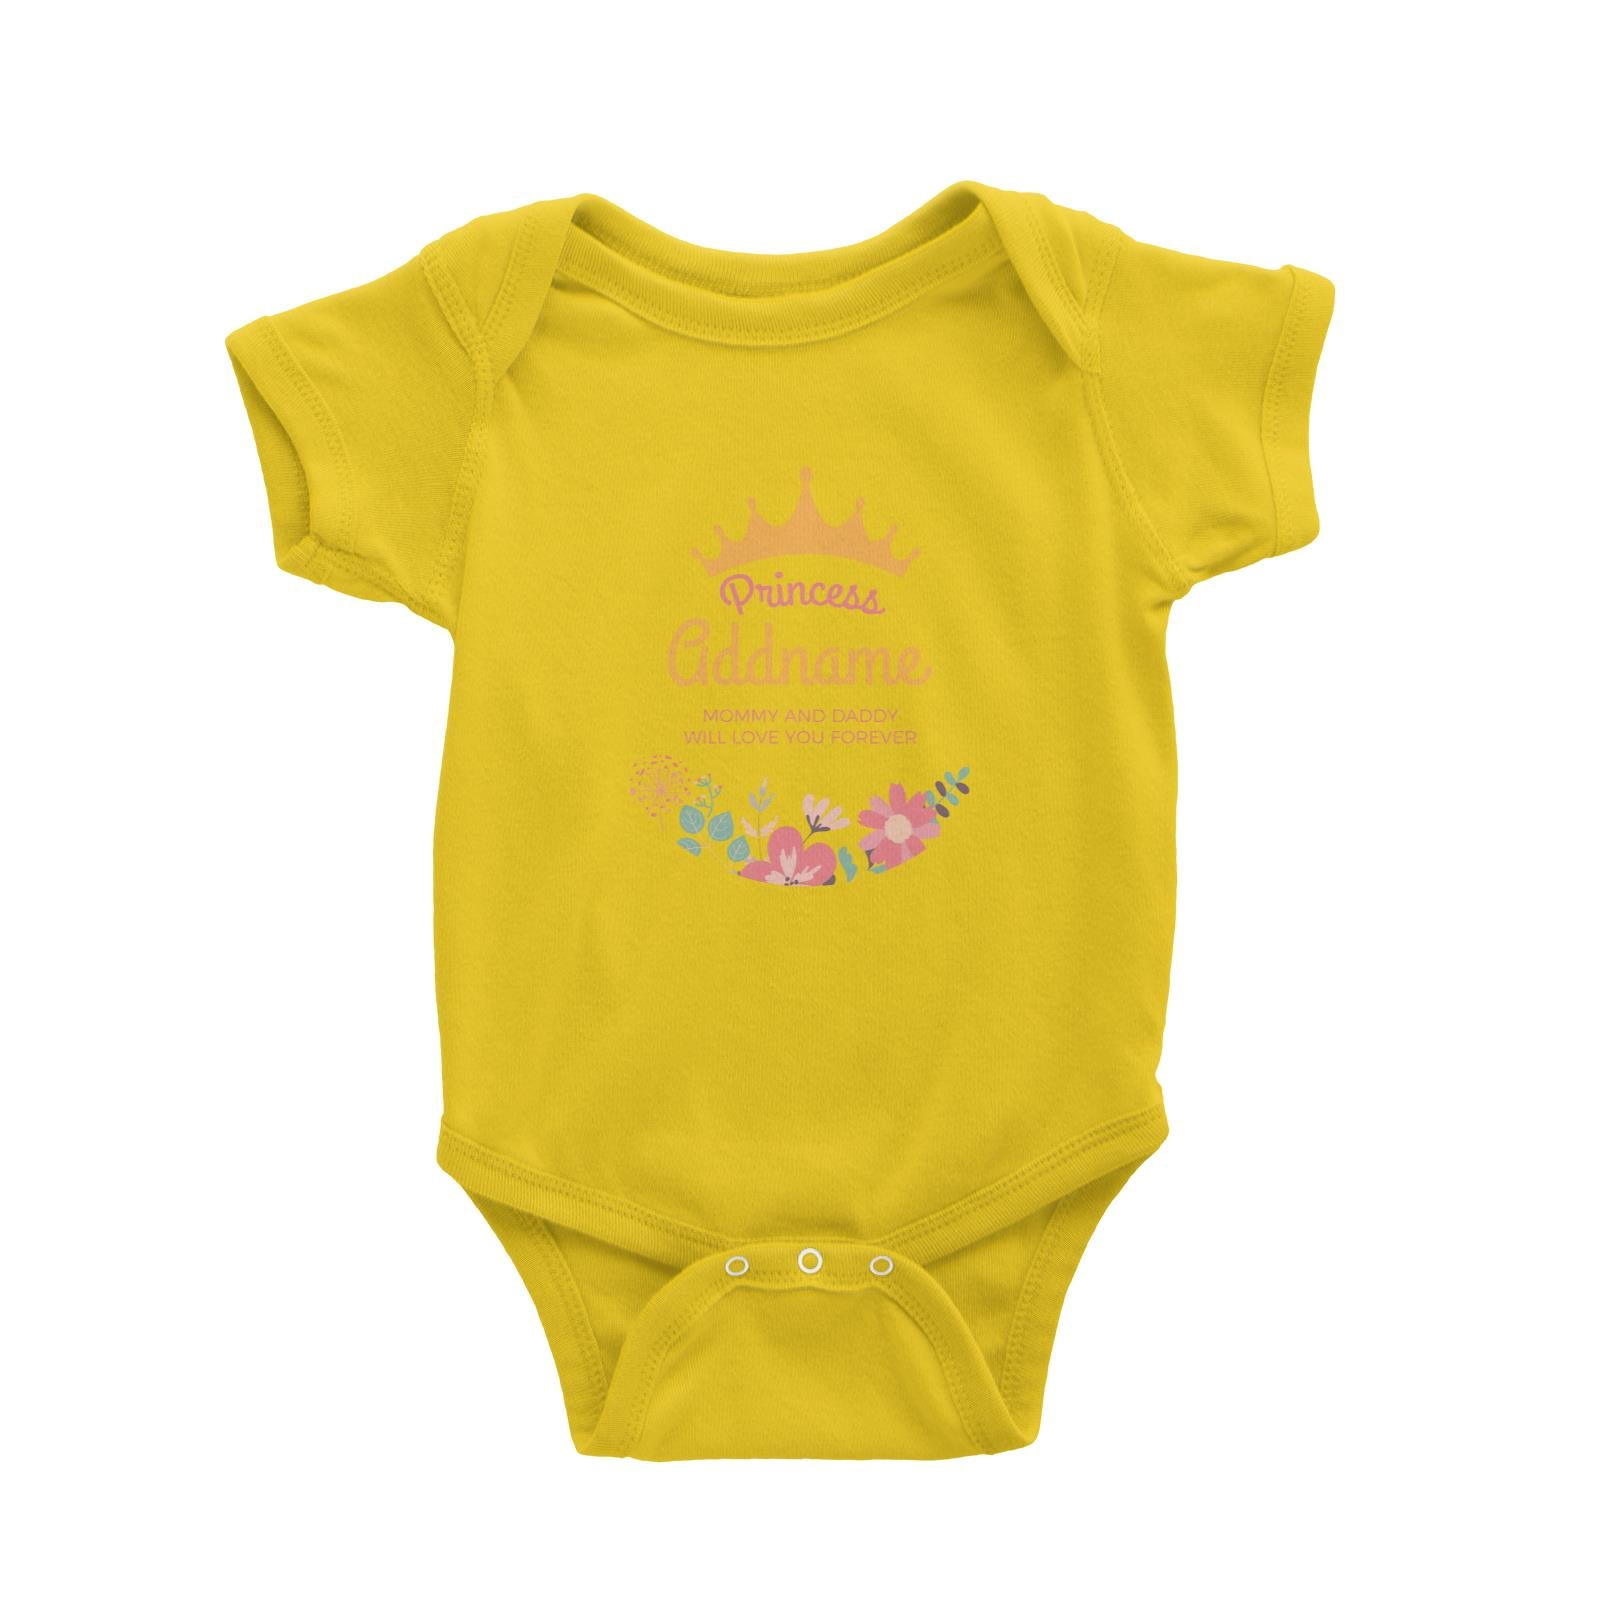 Princess with Tiara and Flowers 2 Personalizable with Name and Text Baby Romper